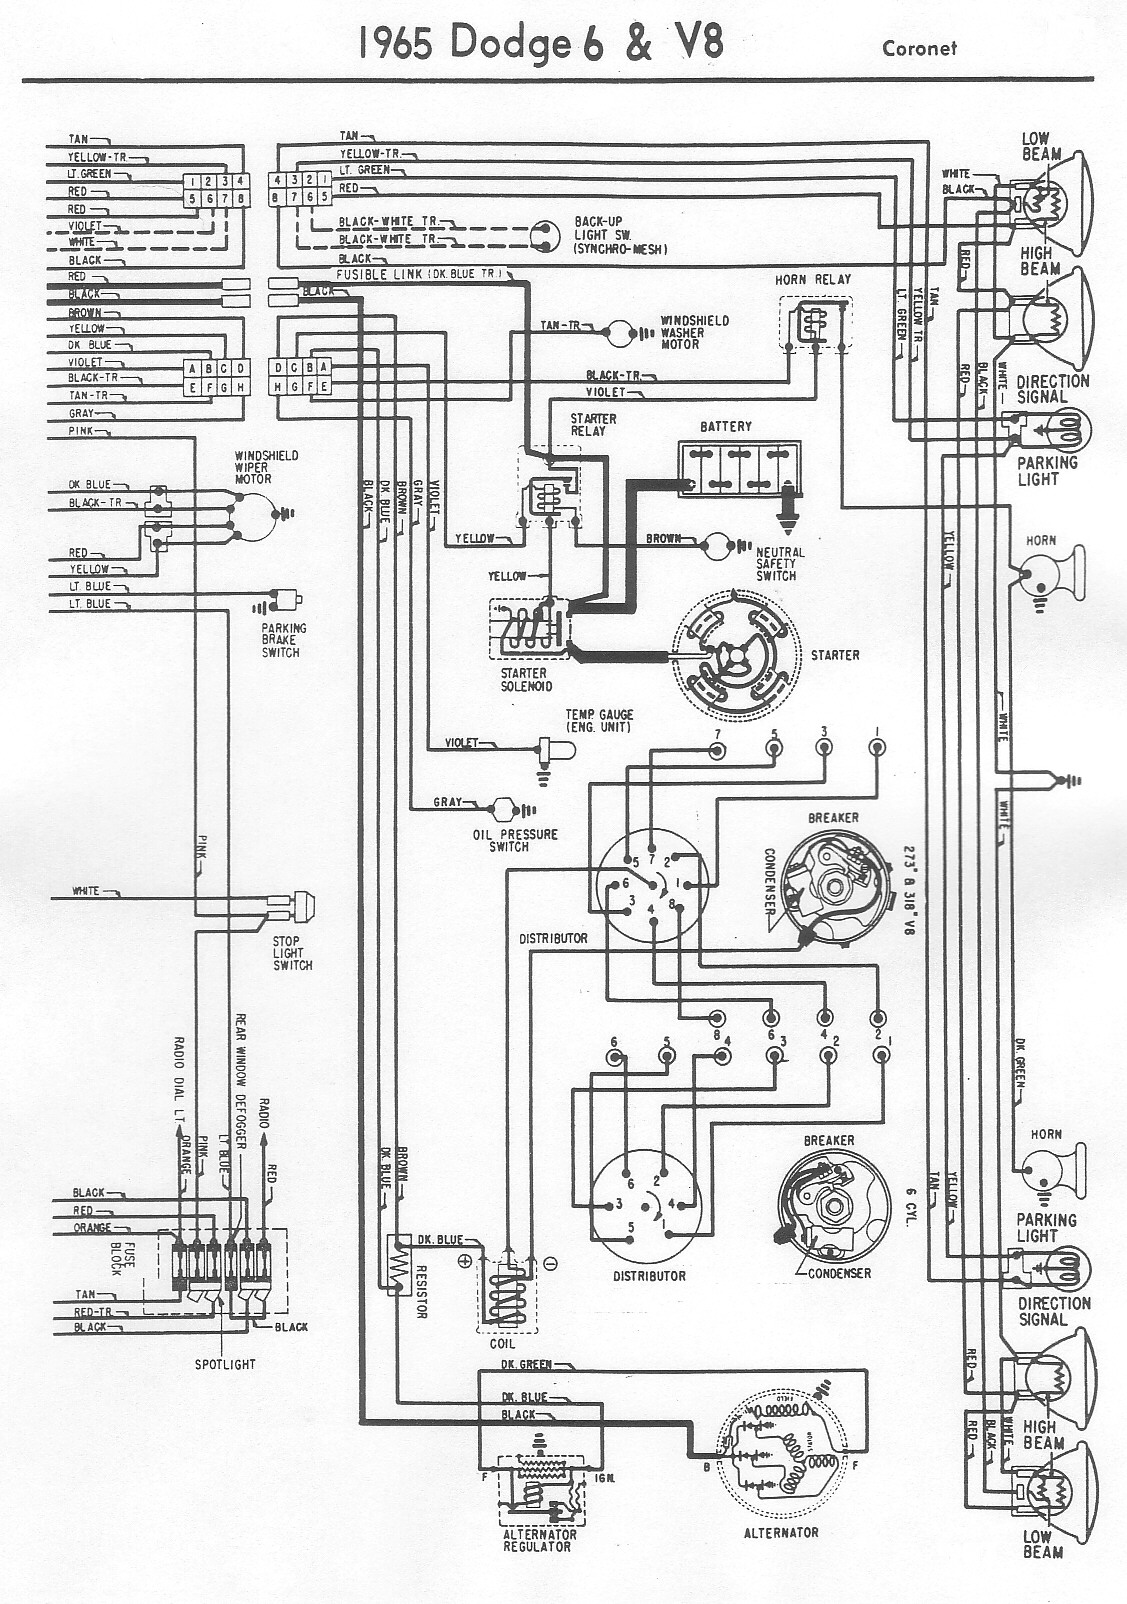 [DIAGRAM_09CH]  C855FD 1966 Chrysler 300 Wiring Diagram | Wiring Resources | 1966 Chrysler 300 Electric Window Wiring Diagram |  | Wiring Resources